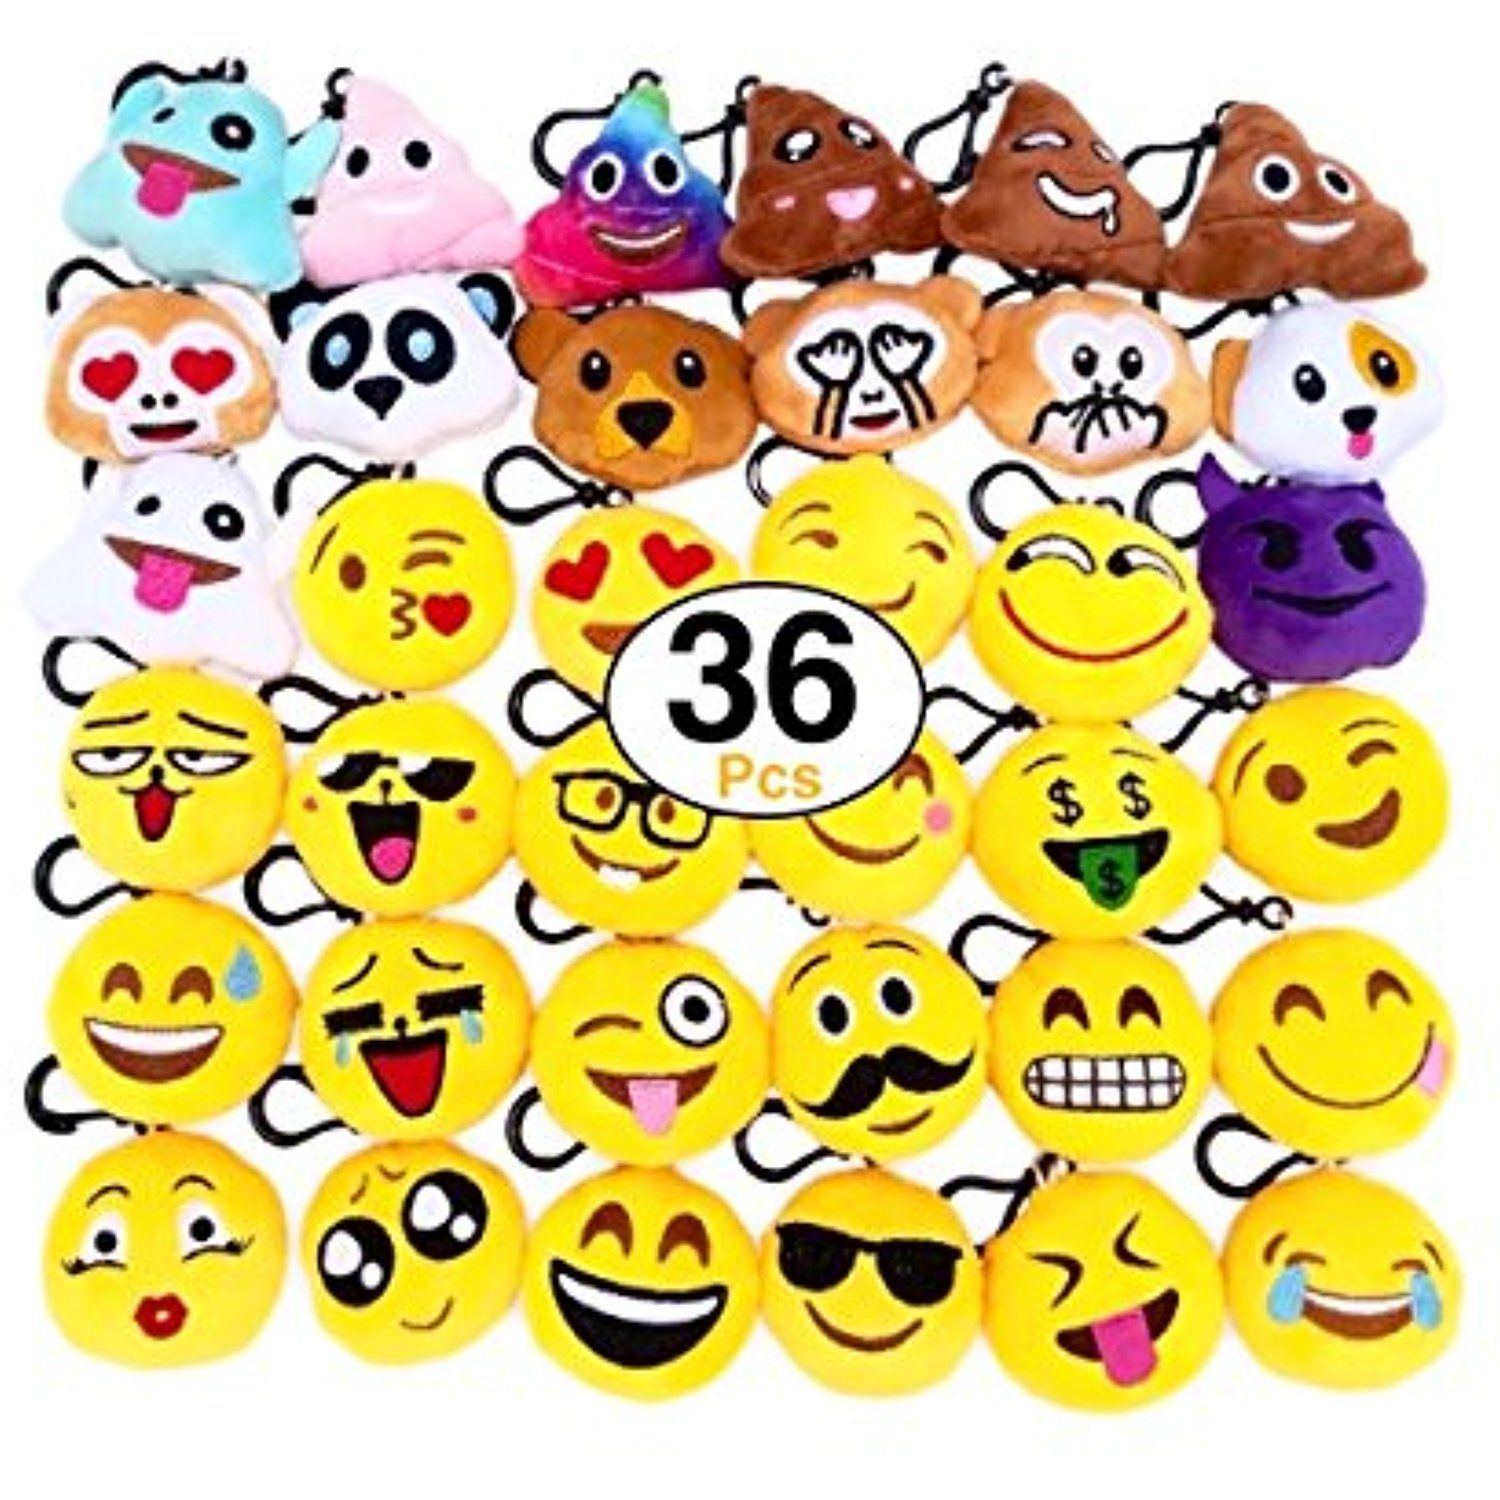 O\'Hill 36 Pack Emoji Plush Pillows Mini Keychain Decorations for ...